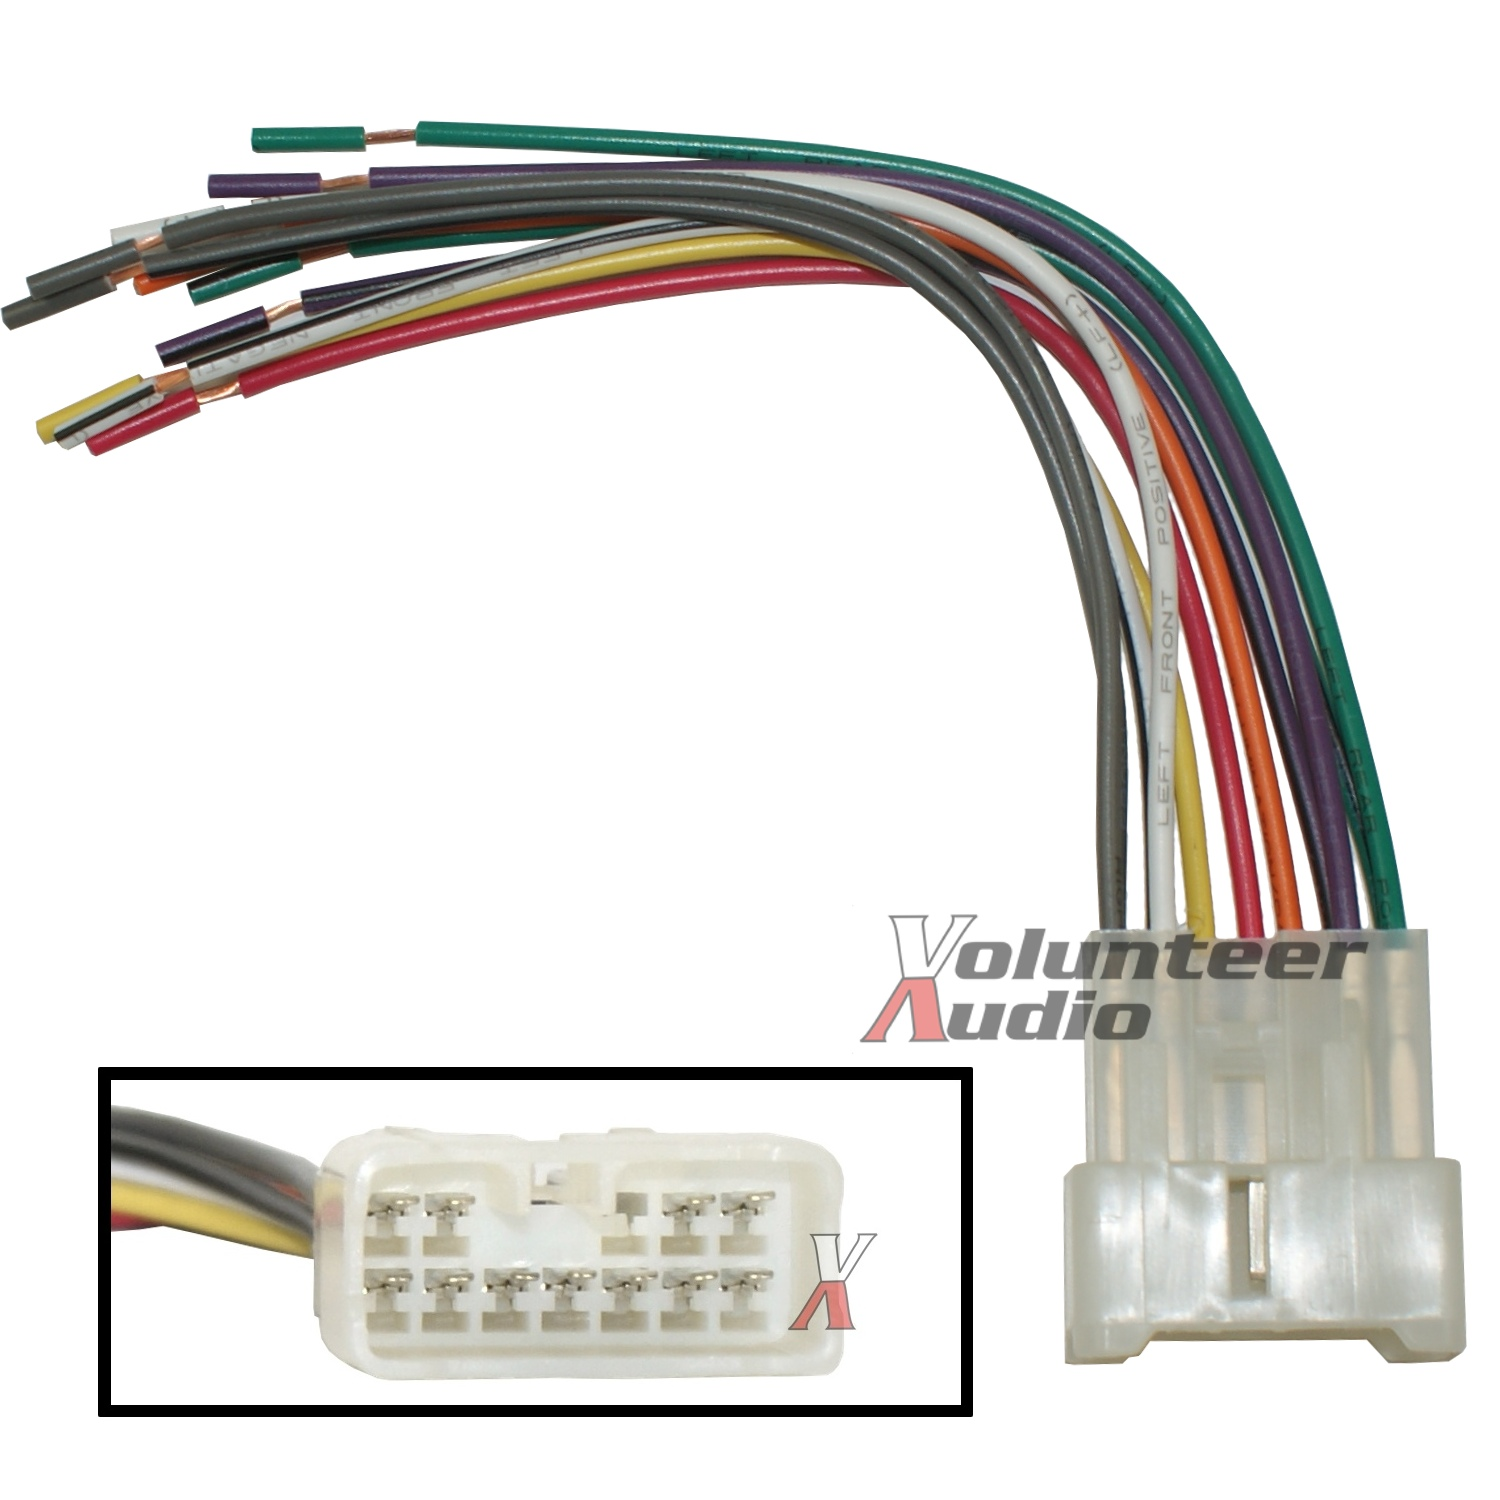 hight resolution of details about suzuki car stereo cd player wiring harness wire aftermarket radio install plug